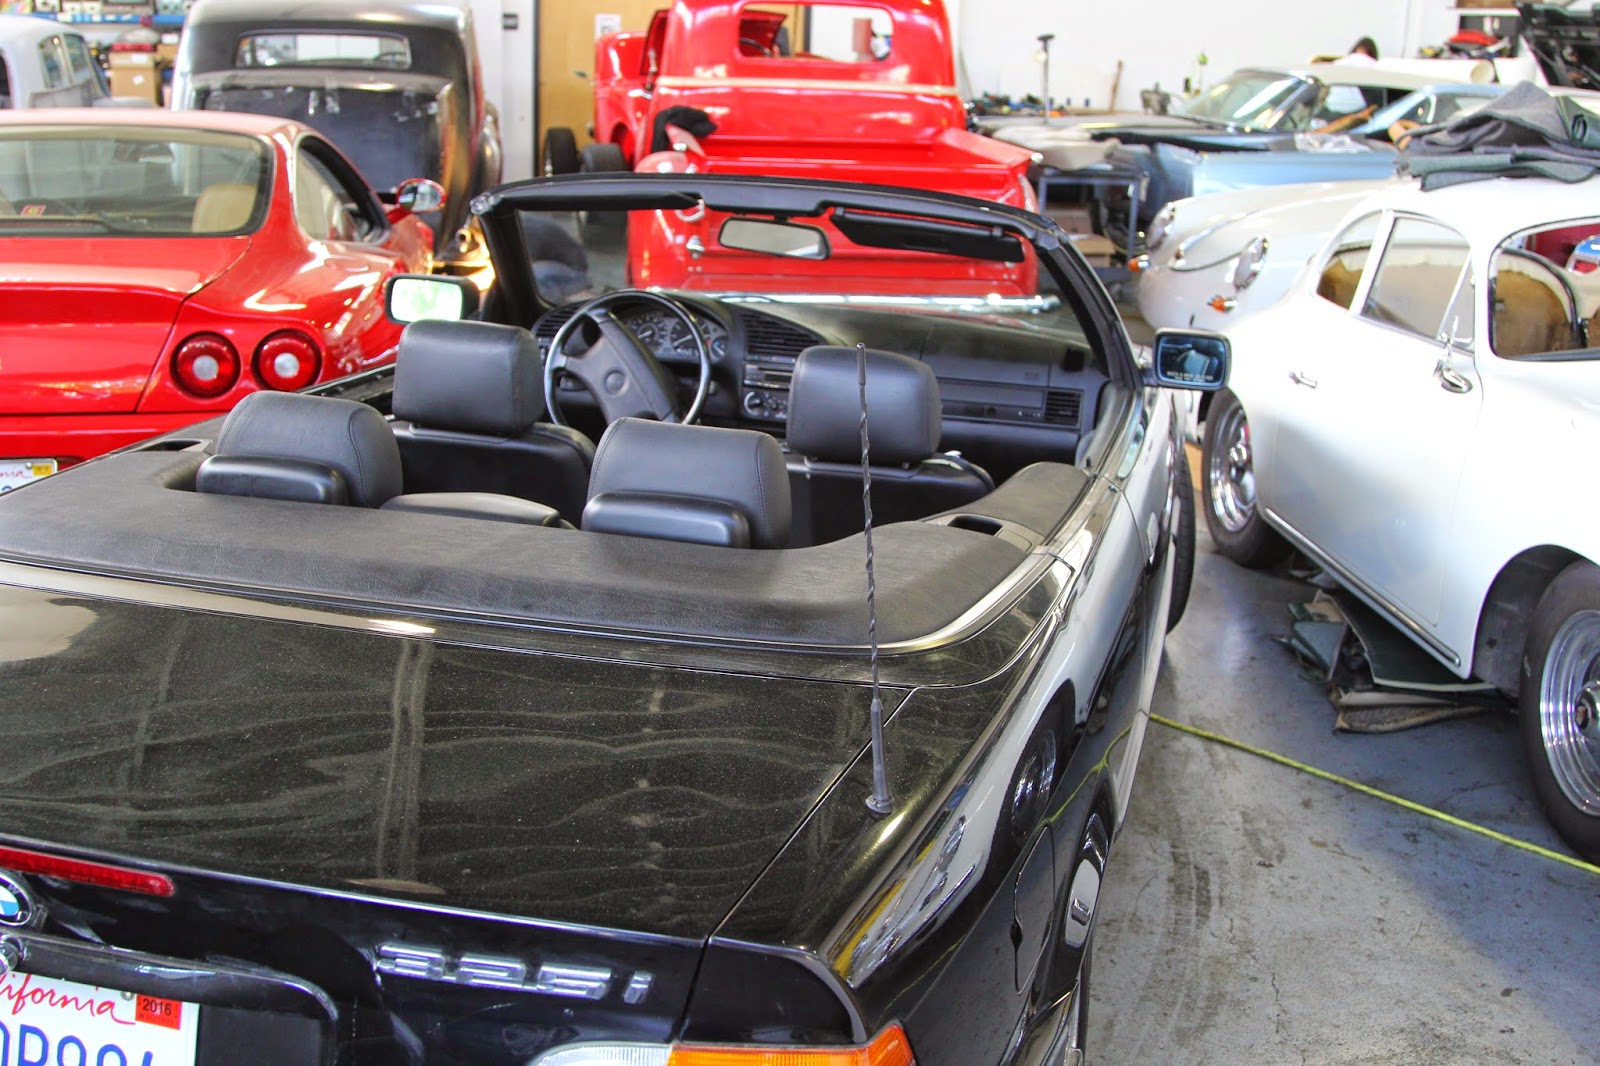 Here We Are Replacing The Convertible Top On Bmw 3 Series As Well Has Redoing Door Panels